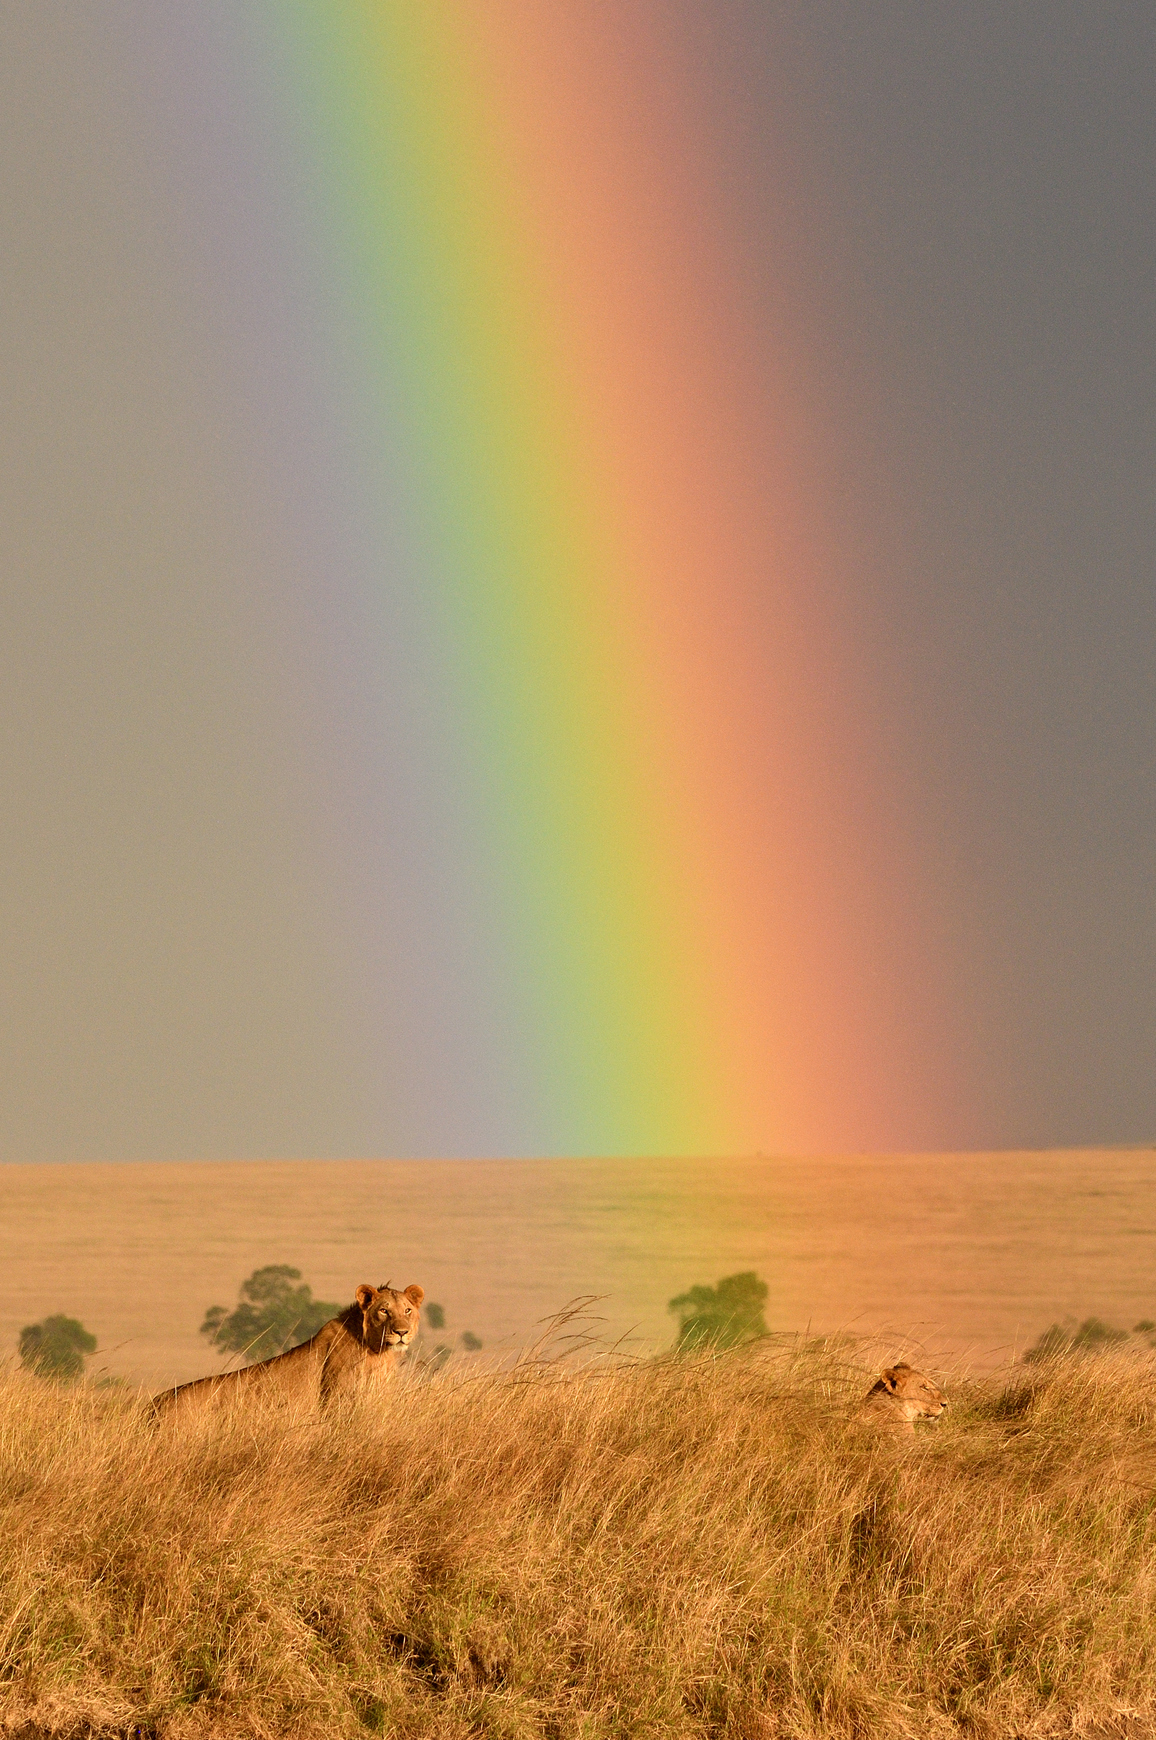 François Jorion: Rainbow in Kenyas savannah